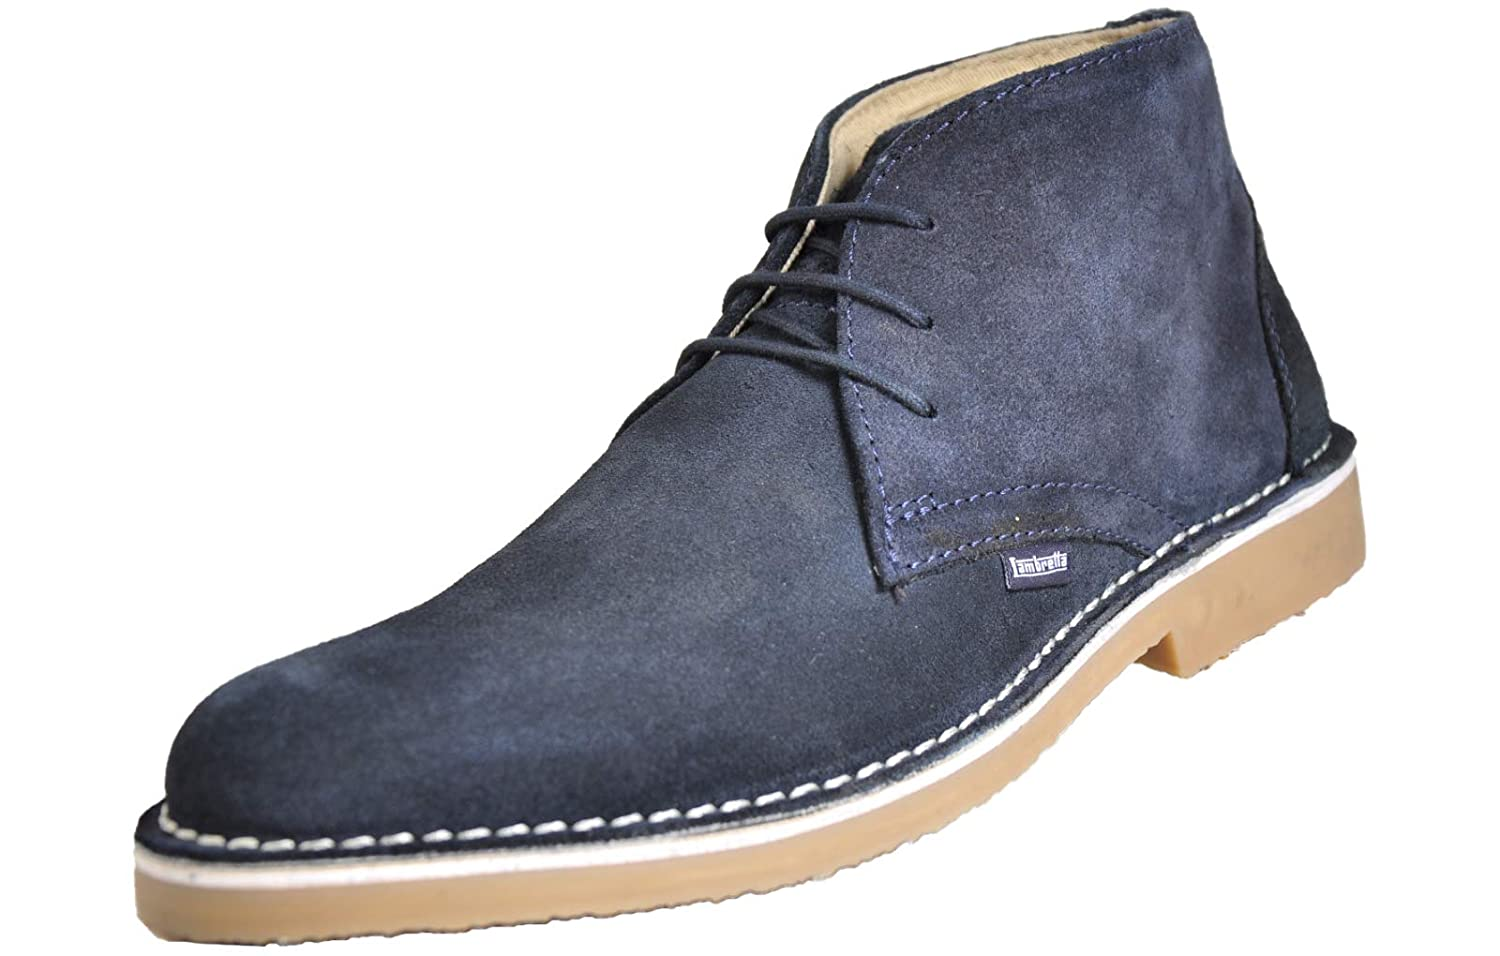 3253980a269 Lambretta Carnaby Mens Classic Suede MOD SKA Lace Up Desert Boots ...